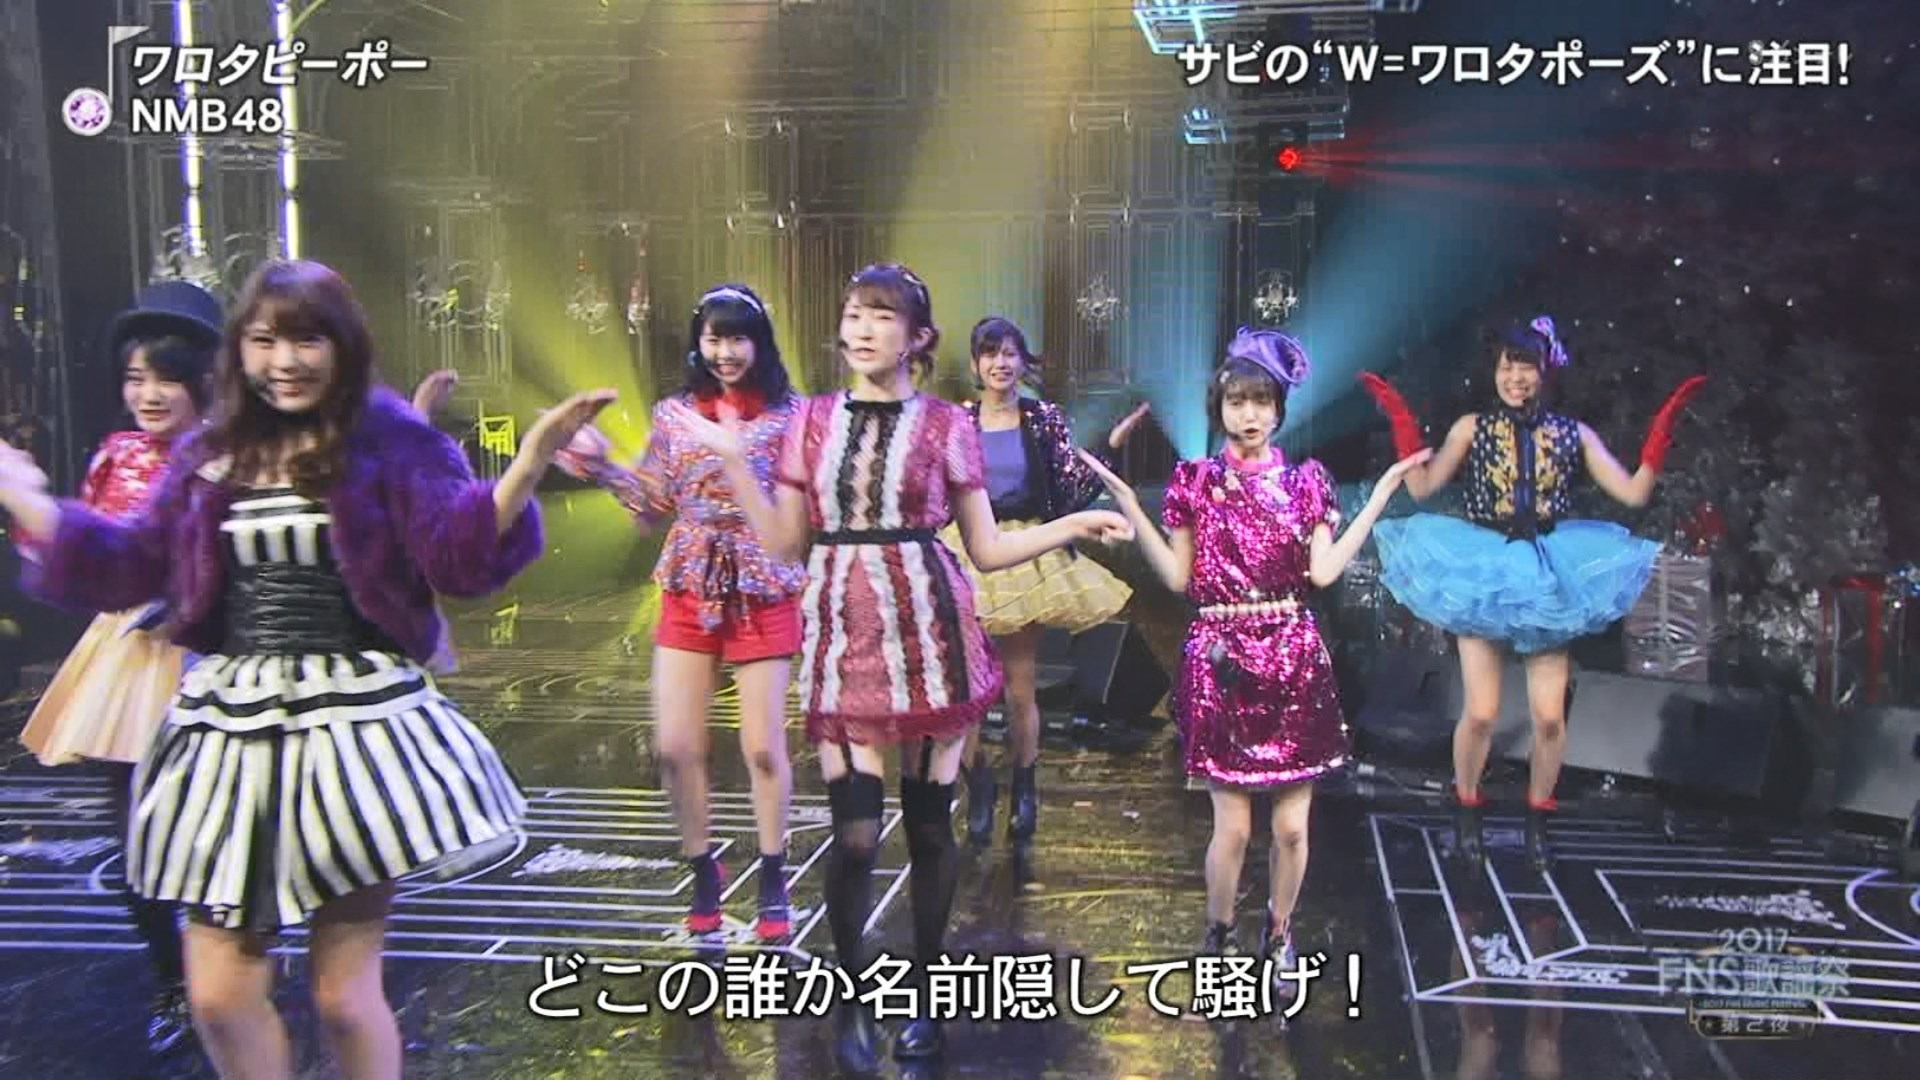 2017FNS歌謡祭第2夜・NMB48ワロタピーポーキャプ-059